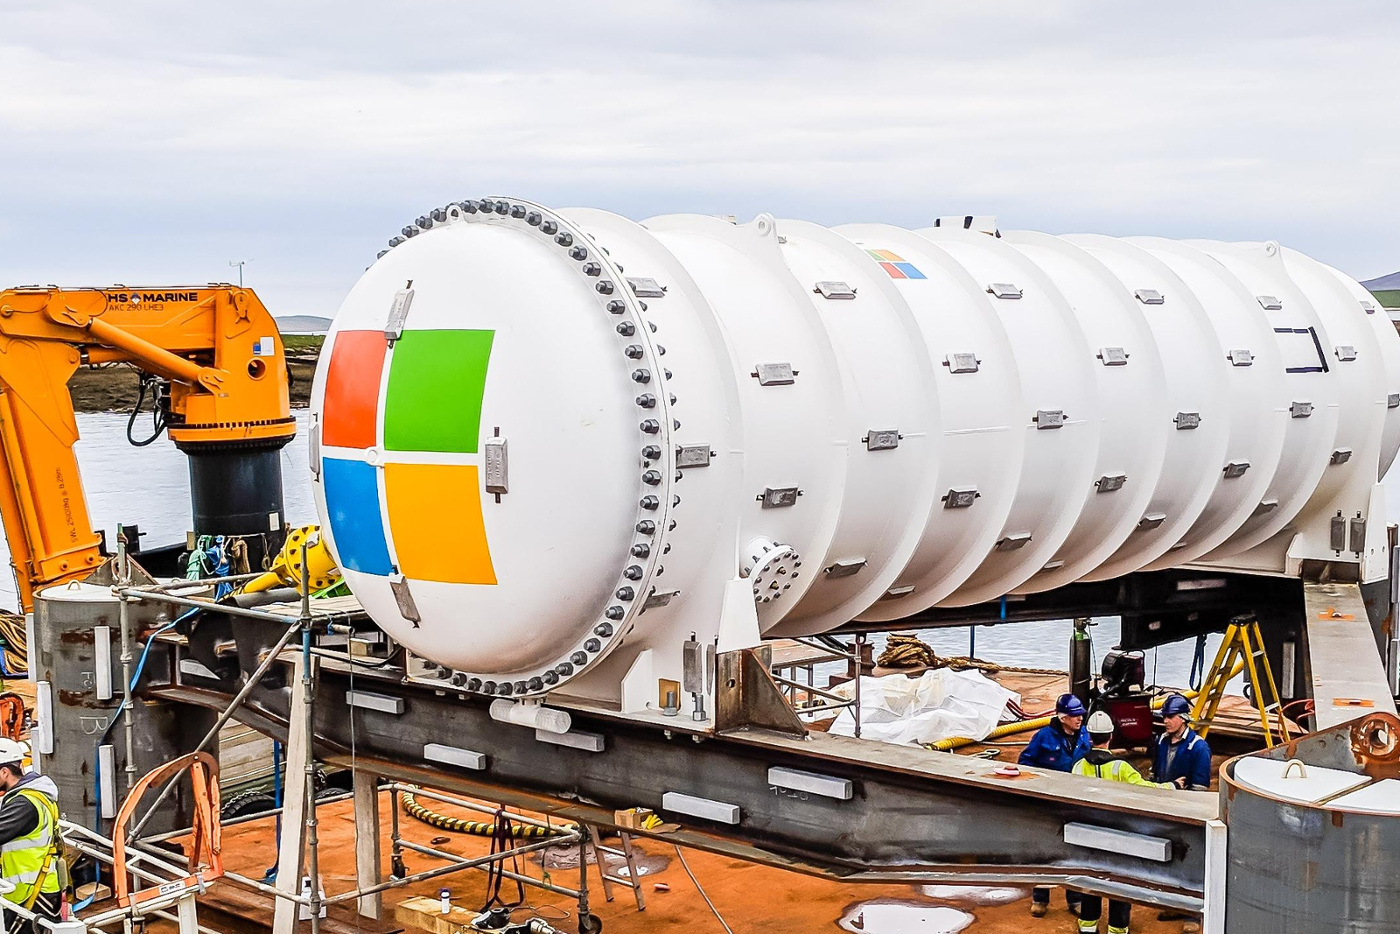 Microsoft put data centers at the bottom of the ocean